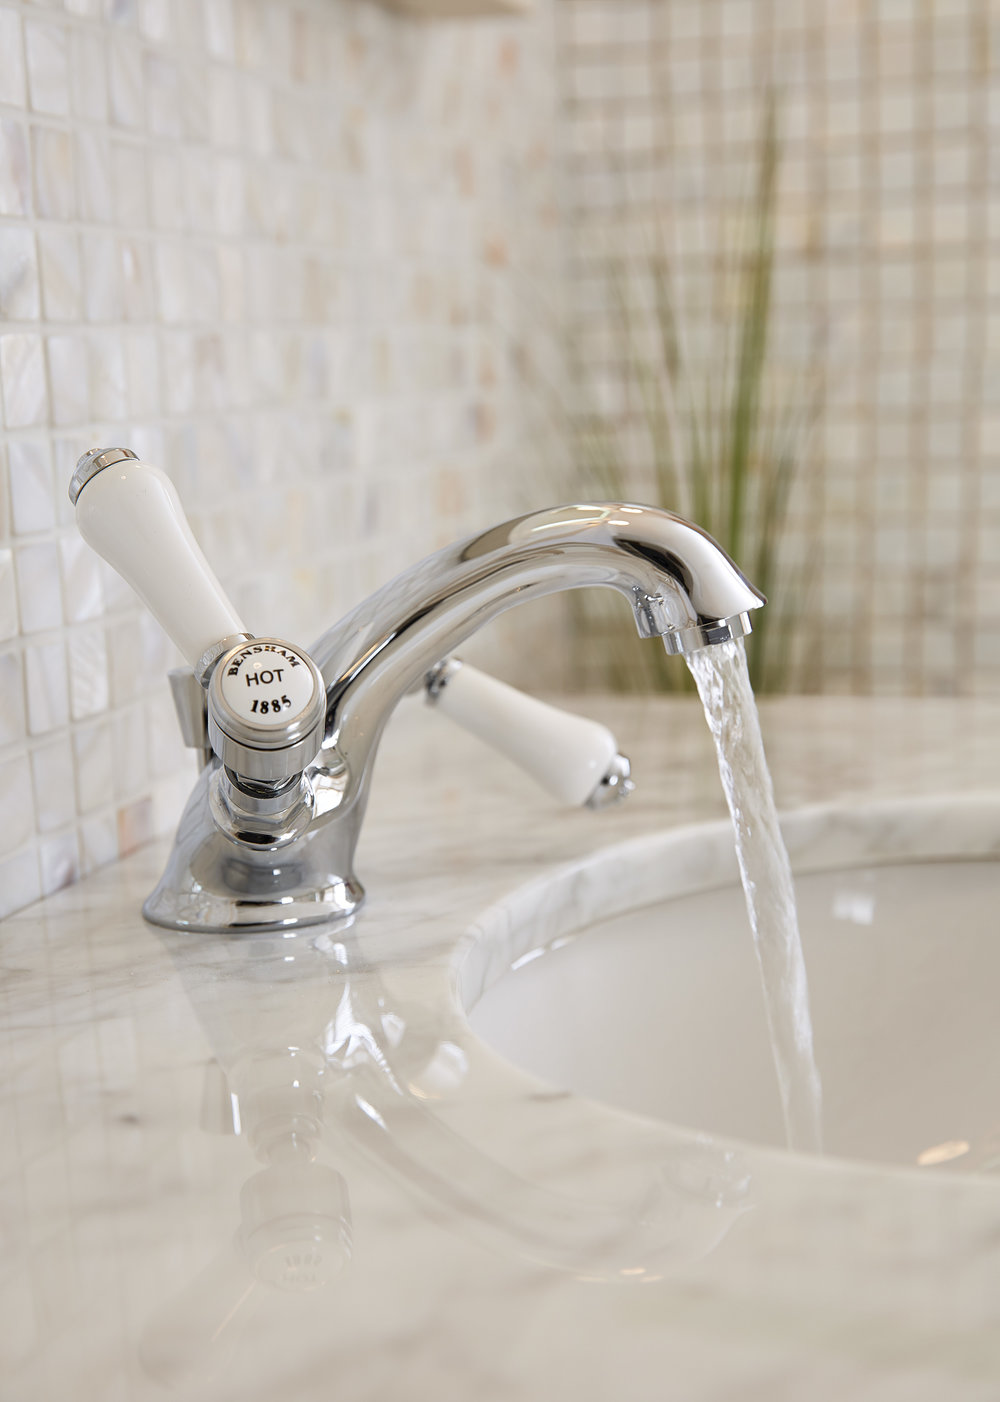 Still Life Product Photography - Bathroom Tap